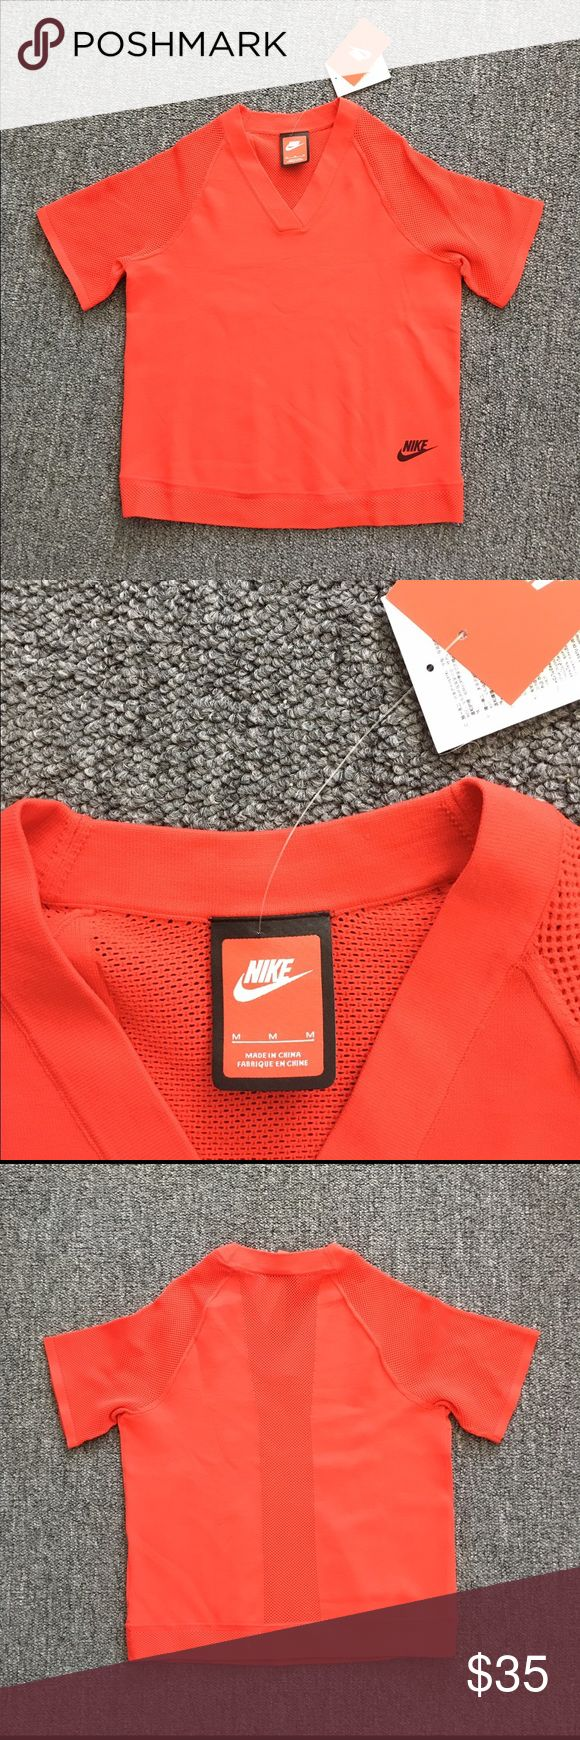 RED Nike tech knit top Style No. 728679-439; brand new with tags; Nike Tech Knit is a unique blend of nylon and cotton that provides warm, sweater-like comfort with a soft, luxurious feel. The semi-sheer sleeves and back panel are made of micro-mesh for increased airflow where you need it the most. Nike Tops Tees - Short Sleeve